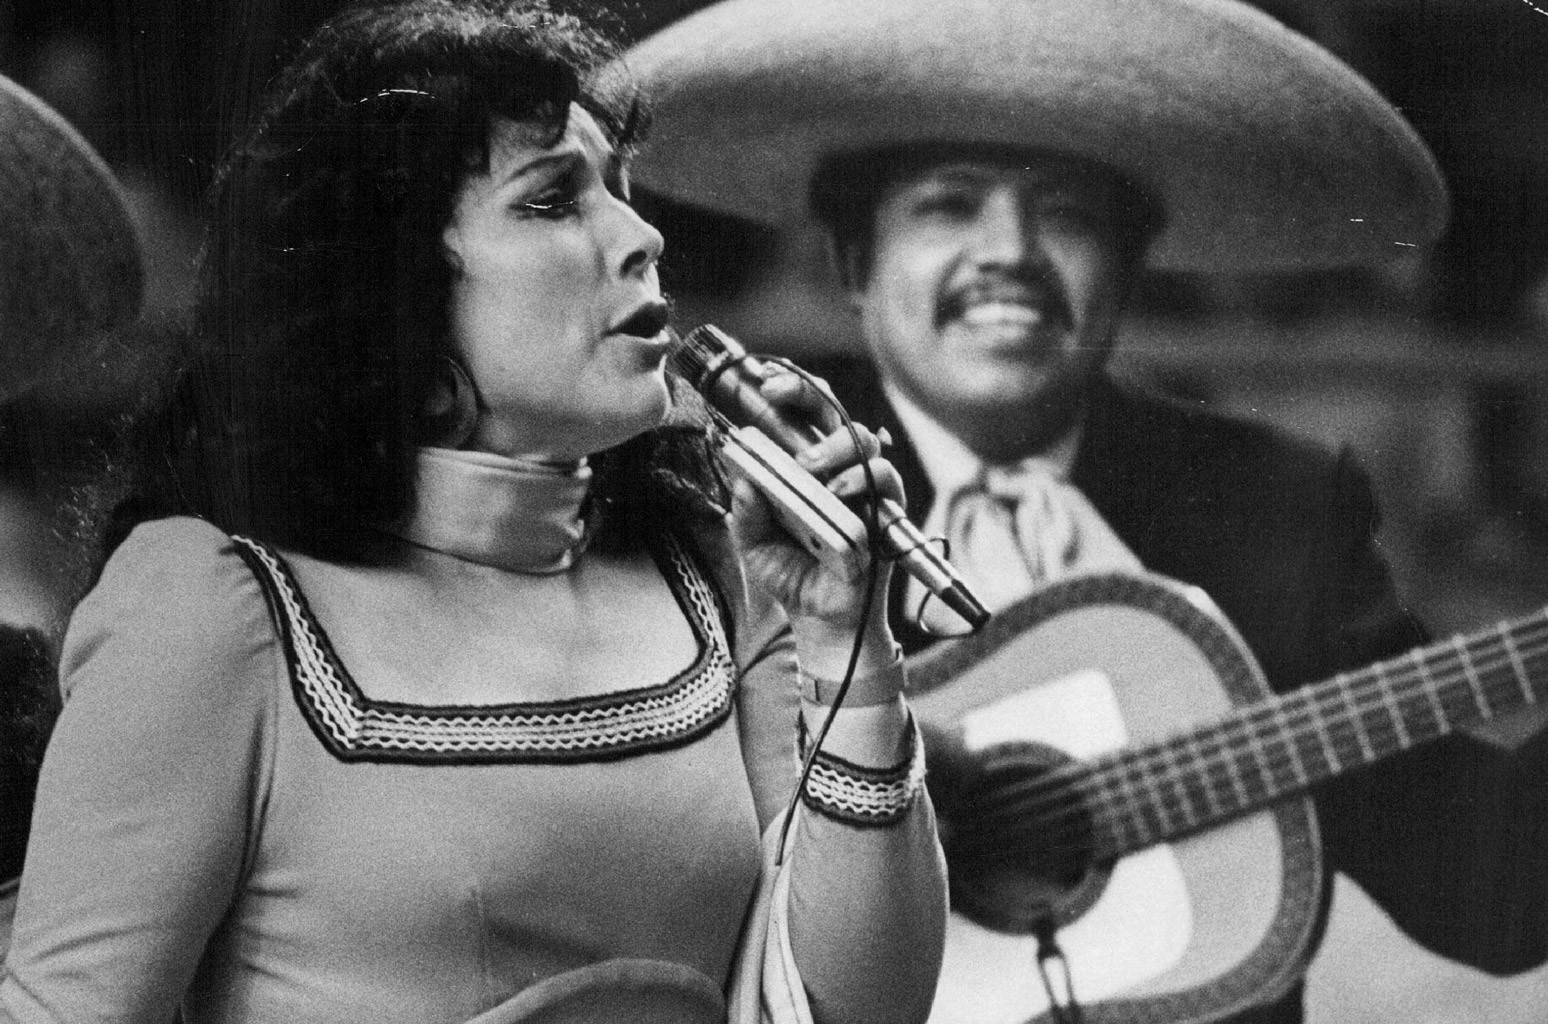 Mexican Singer & Actress Flor Silvestre Dies at 90